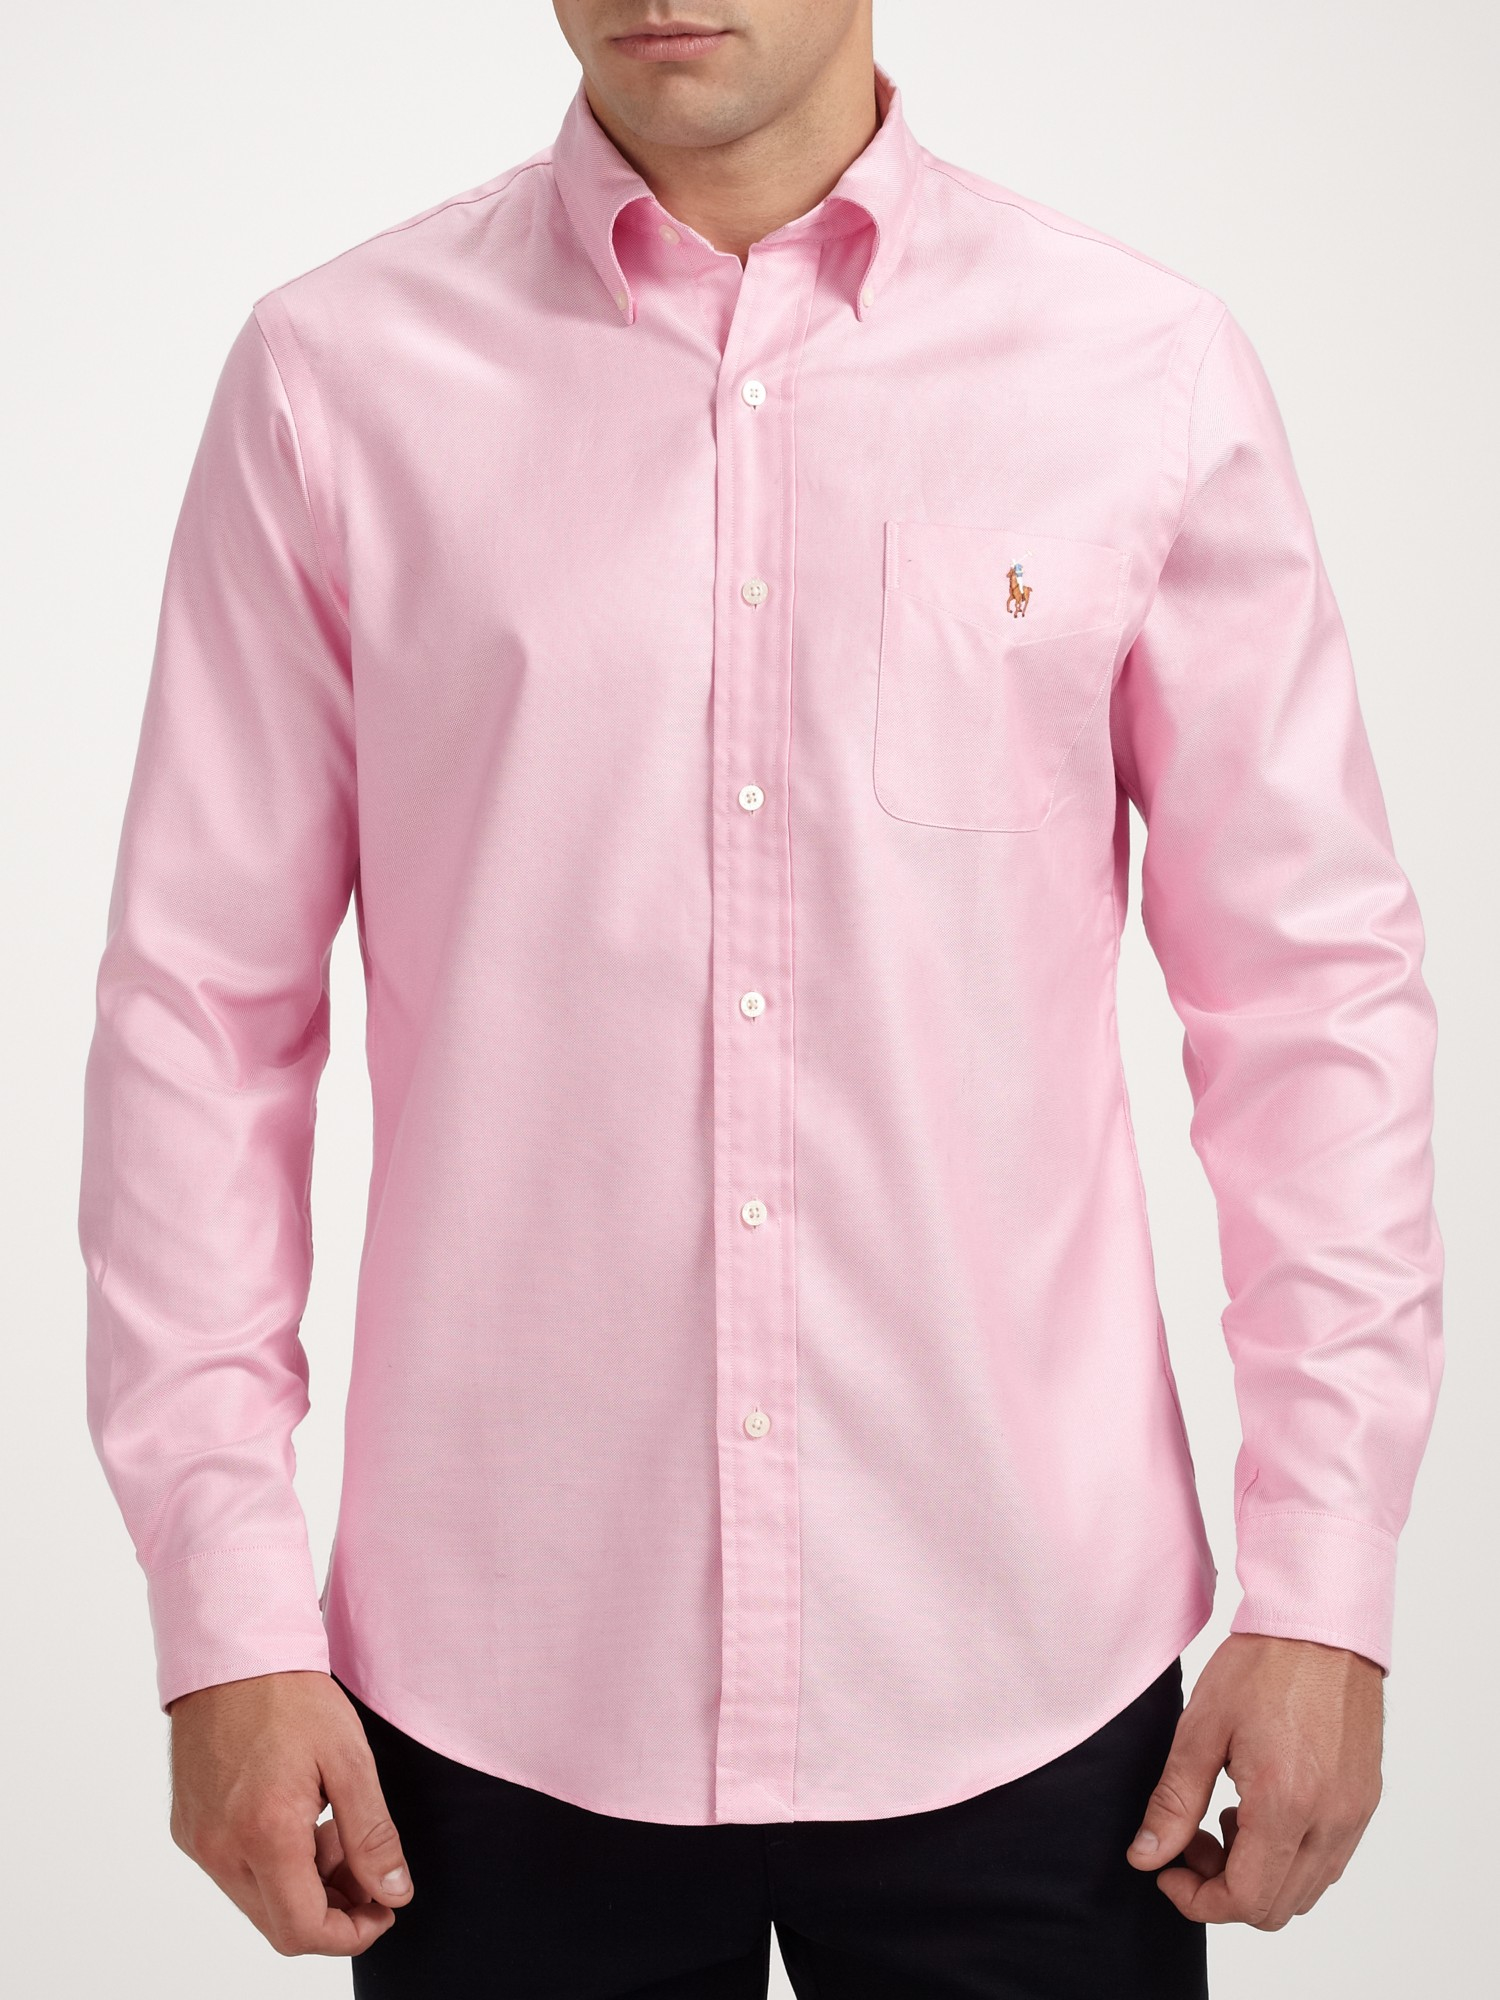 lyst polo ralph lauren oxford shirt in pink for men. Black Bedroom Furniture Sets. Home Design Ideas